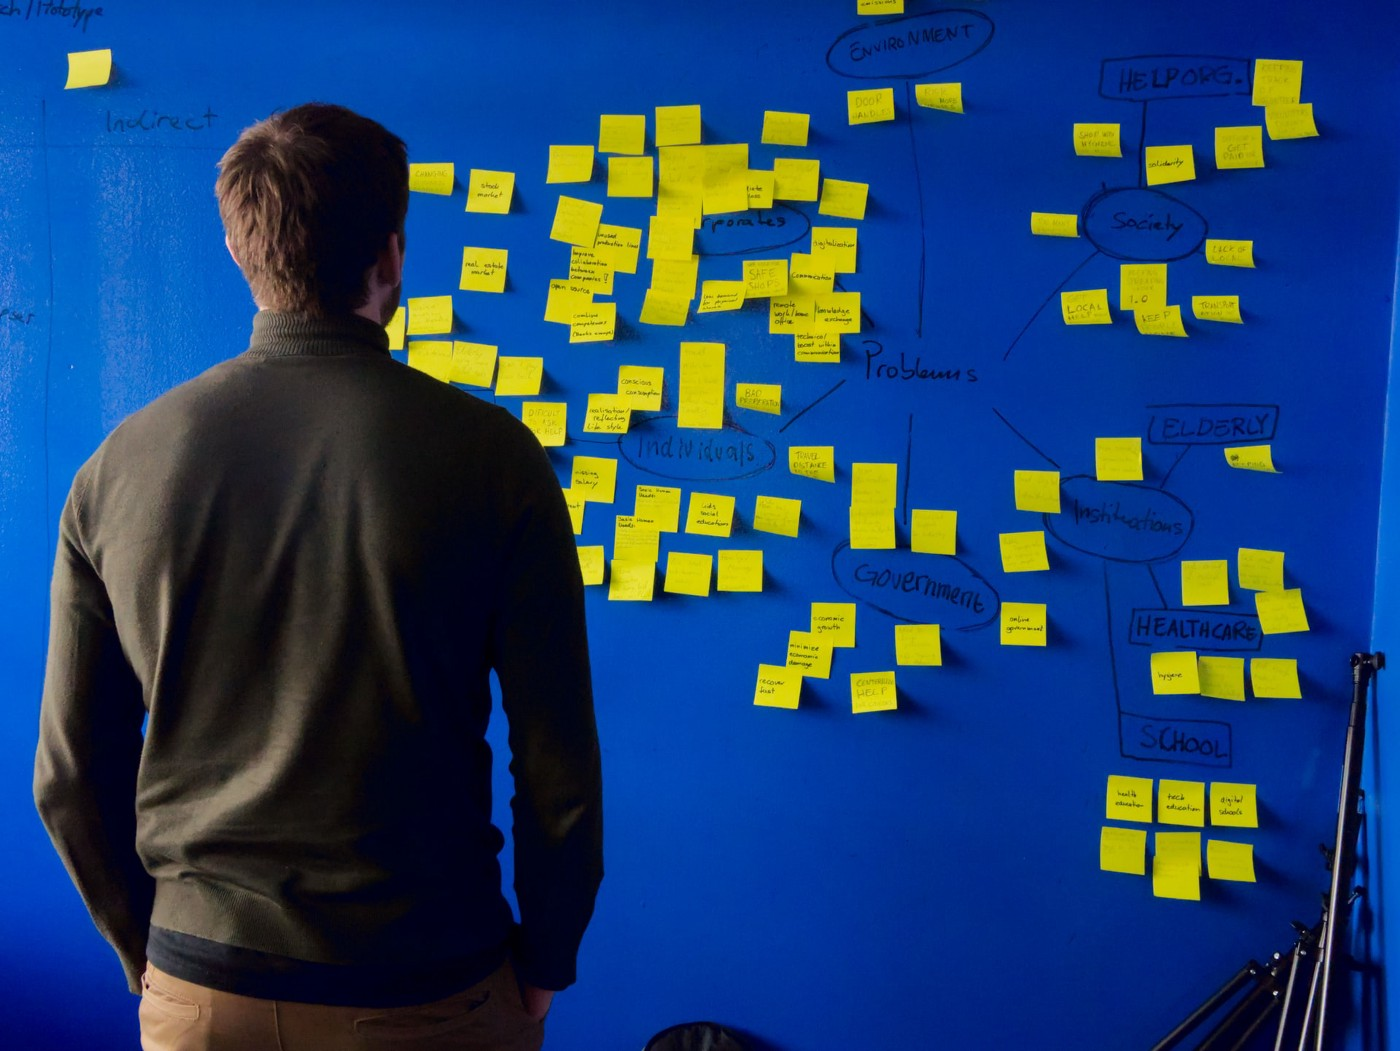 A person is looking on a wall full of yellow sticky notes, possibly with ideas